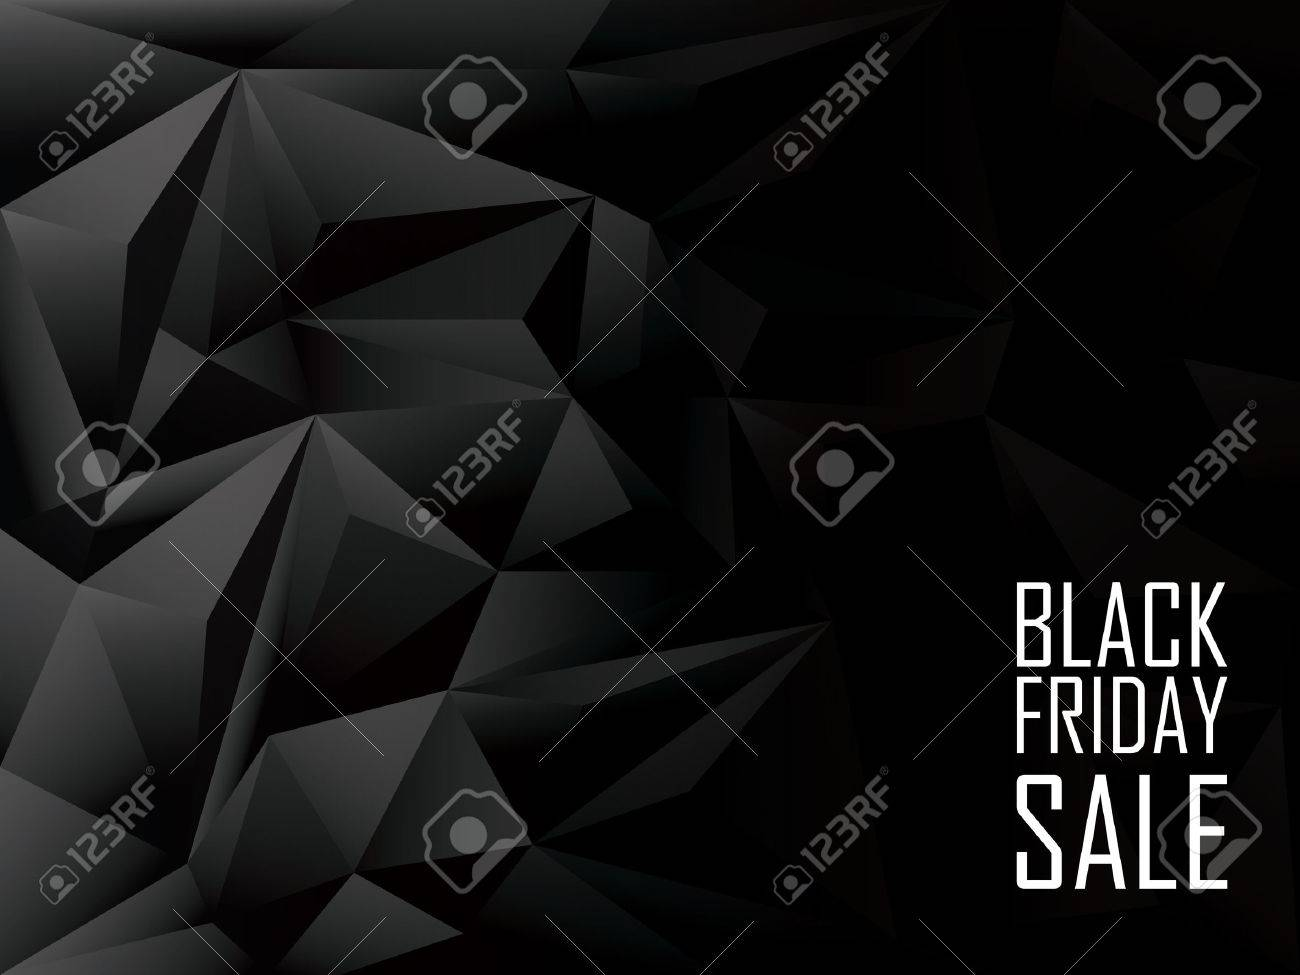 Rabatte Black Friday Stock Photo